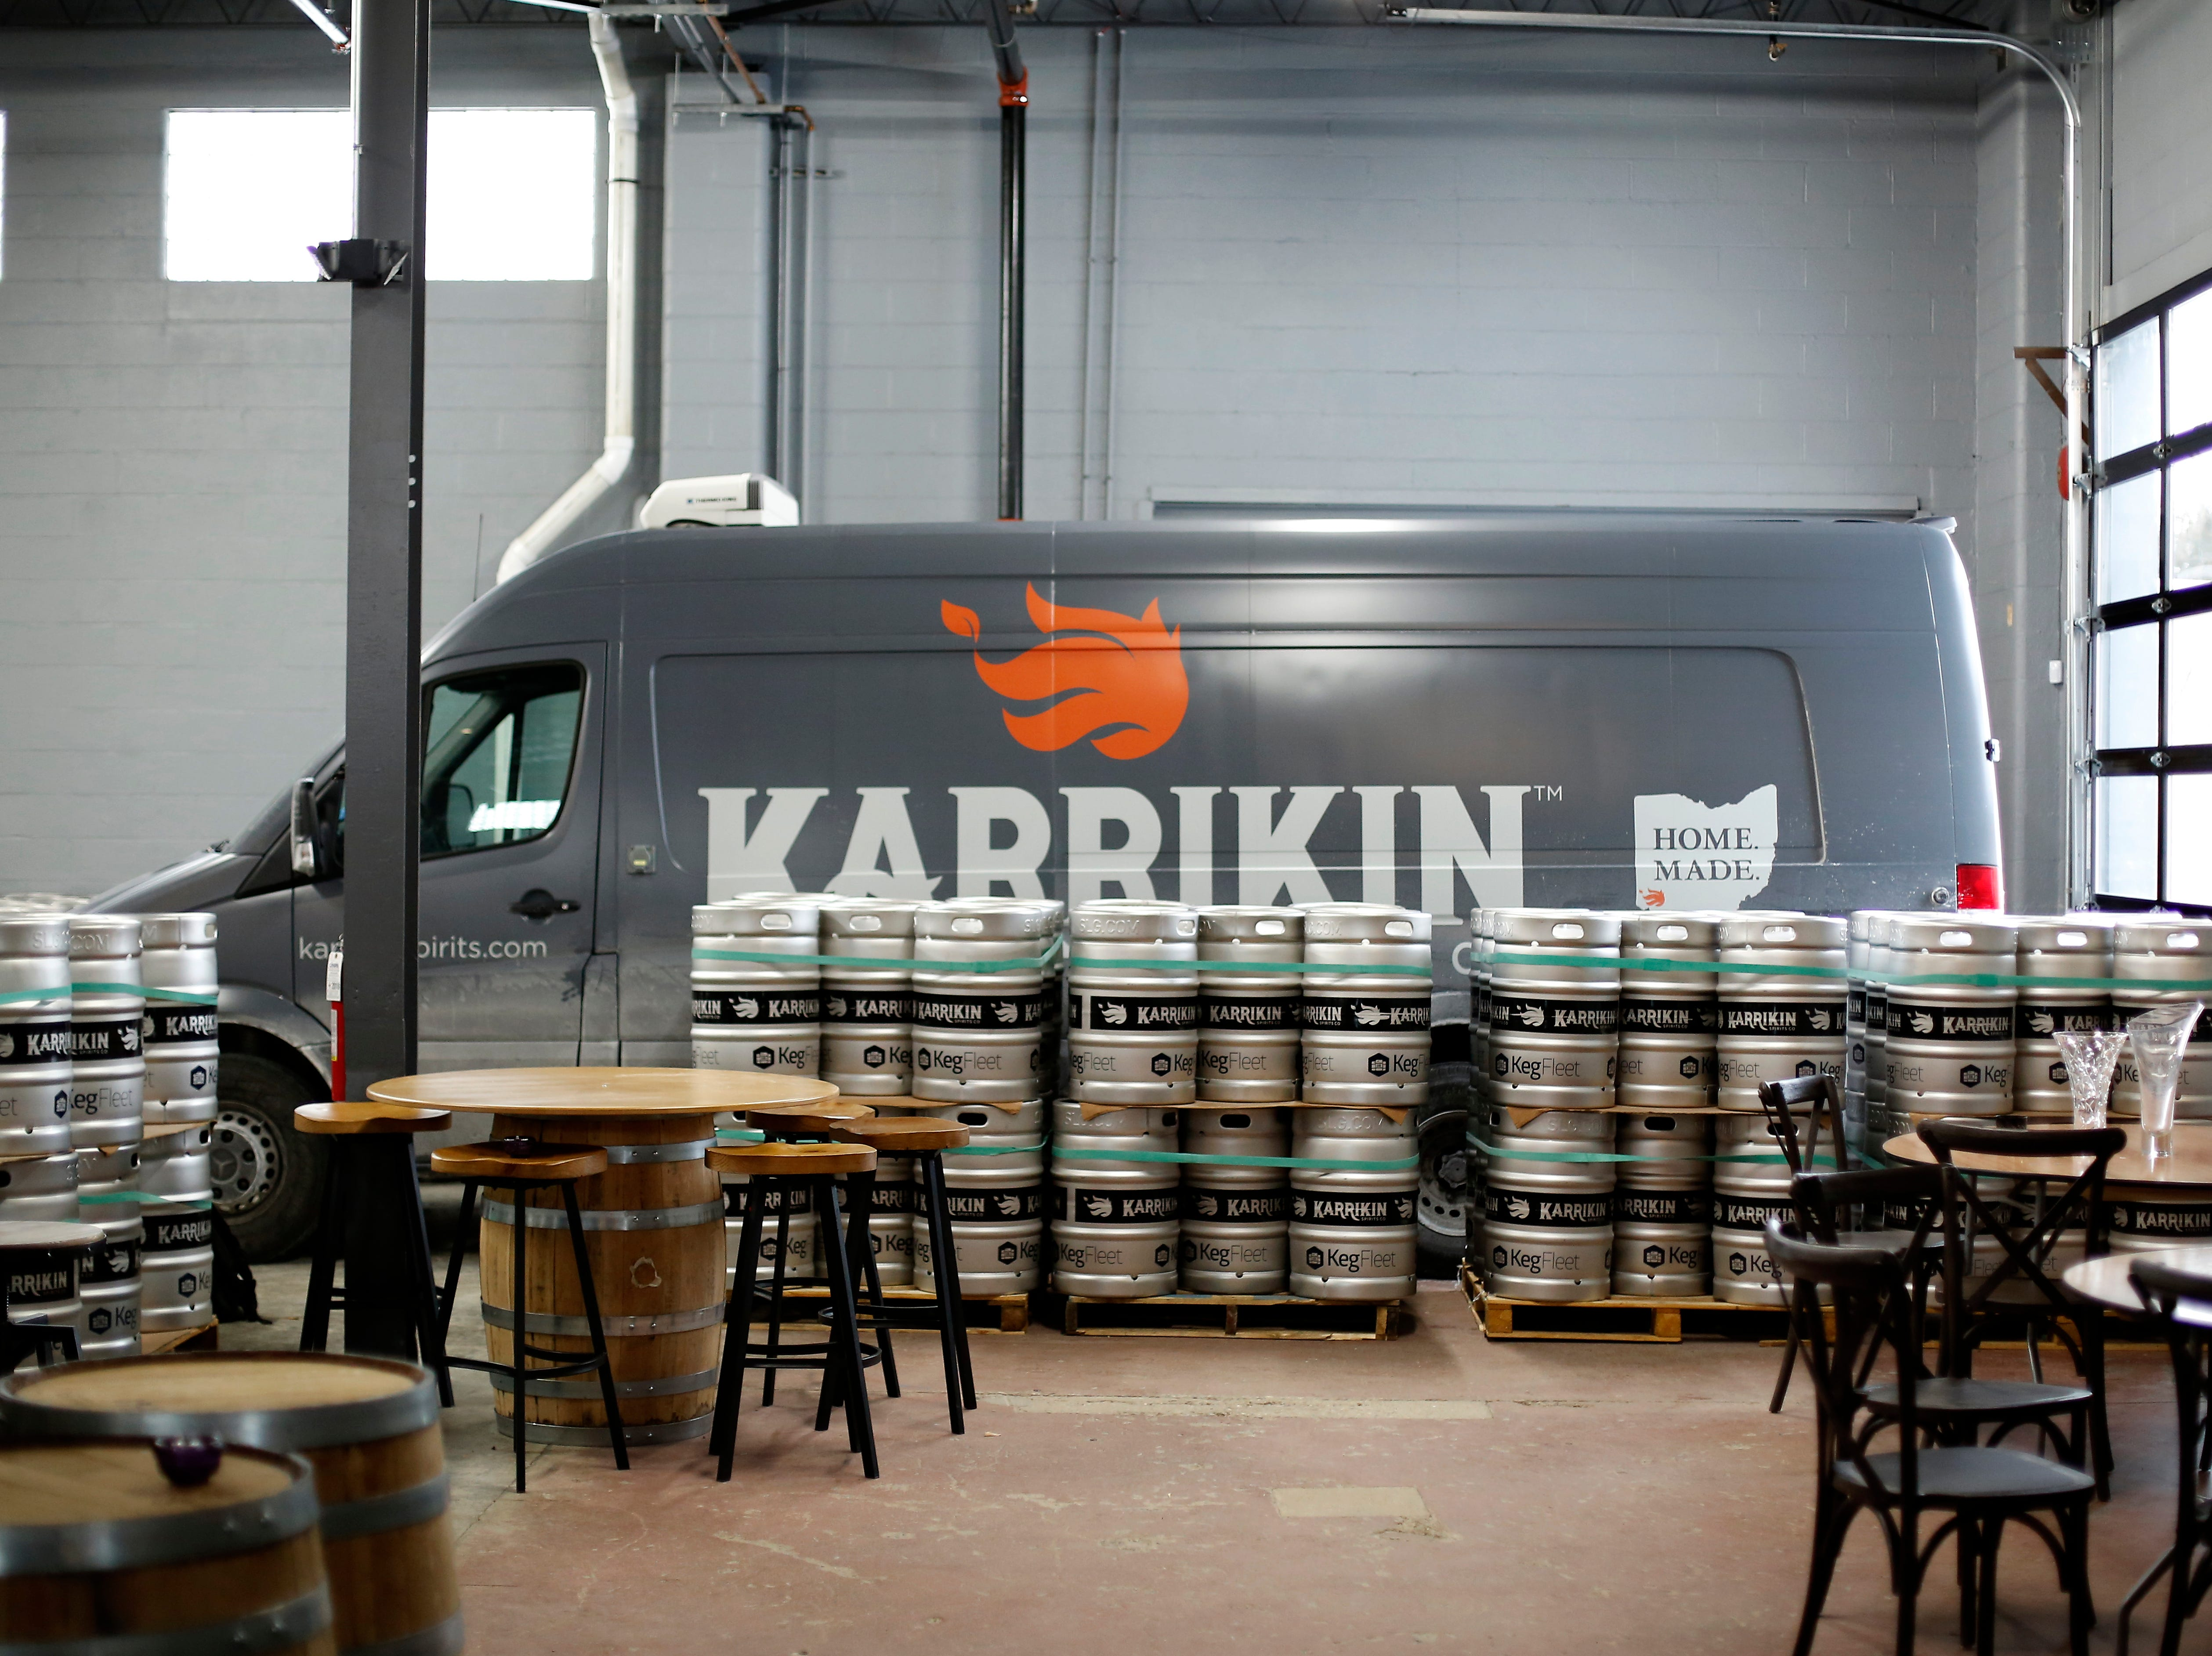 A delivery truck is pulled into the loading area at Karrikin Spirits Co. in the Fairfax neighborhood of Cincinnati on Thursday, Jan. 31, 2019.